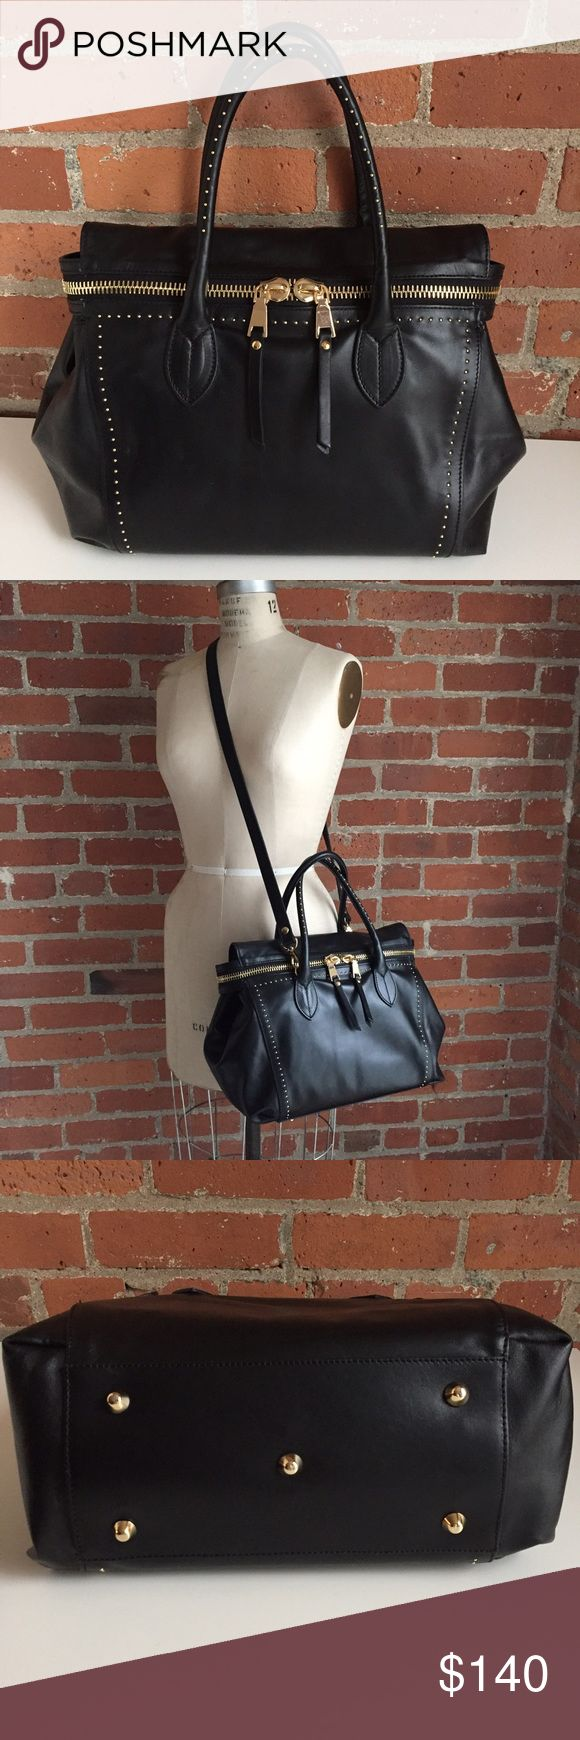 Black Leather Moto Satchel Gorgeous soft leather with micro stud detailing on the front and handles. Like brand new, I am super careful with my bags! No marks or stains, and I have a nonsmoking, pet-free home. The oversized gold zipper extends out to each side so you can open the bag wide. The zipper ends can snap to the back of the bag, or you can leave them loose. The long strap is detachable. This bag is surprisingly lightweight,  and you just want to hug it because the leather is so soft…